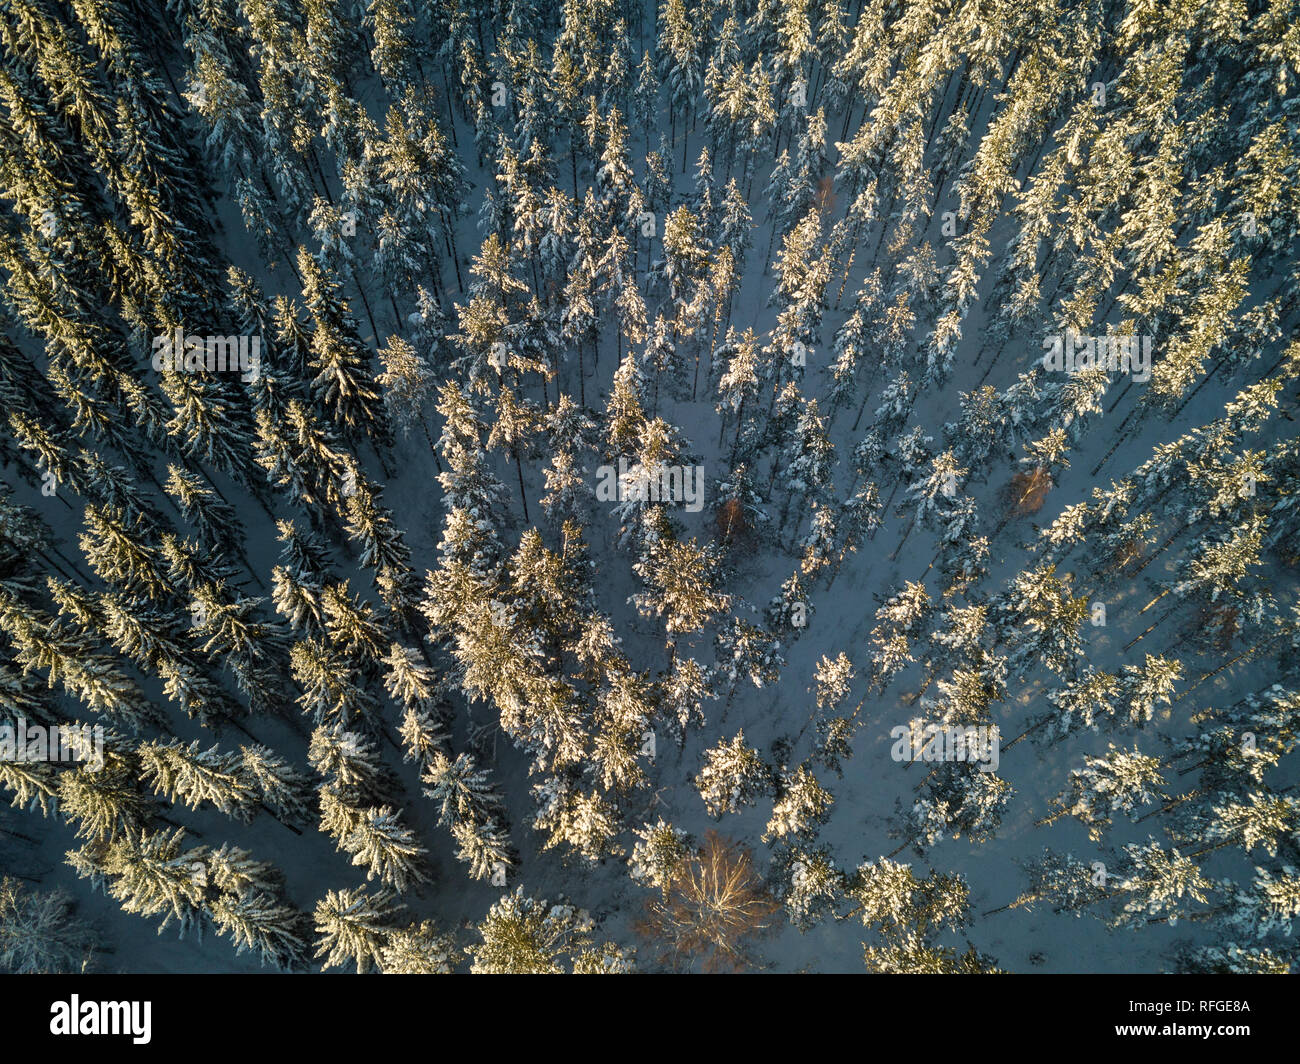 Aerial view of snowy treetops of spruces and pines in boreal coniferous forest. - Stock Image